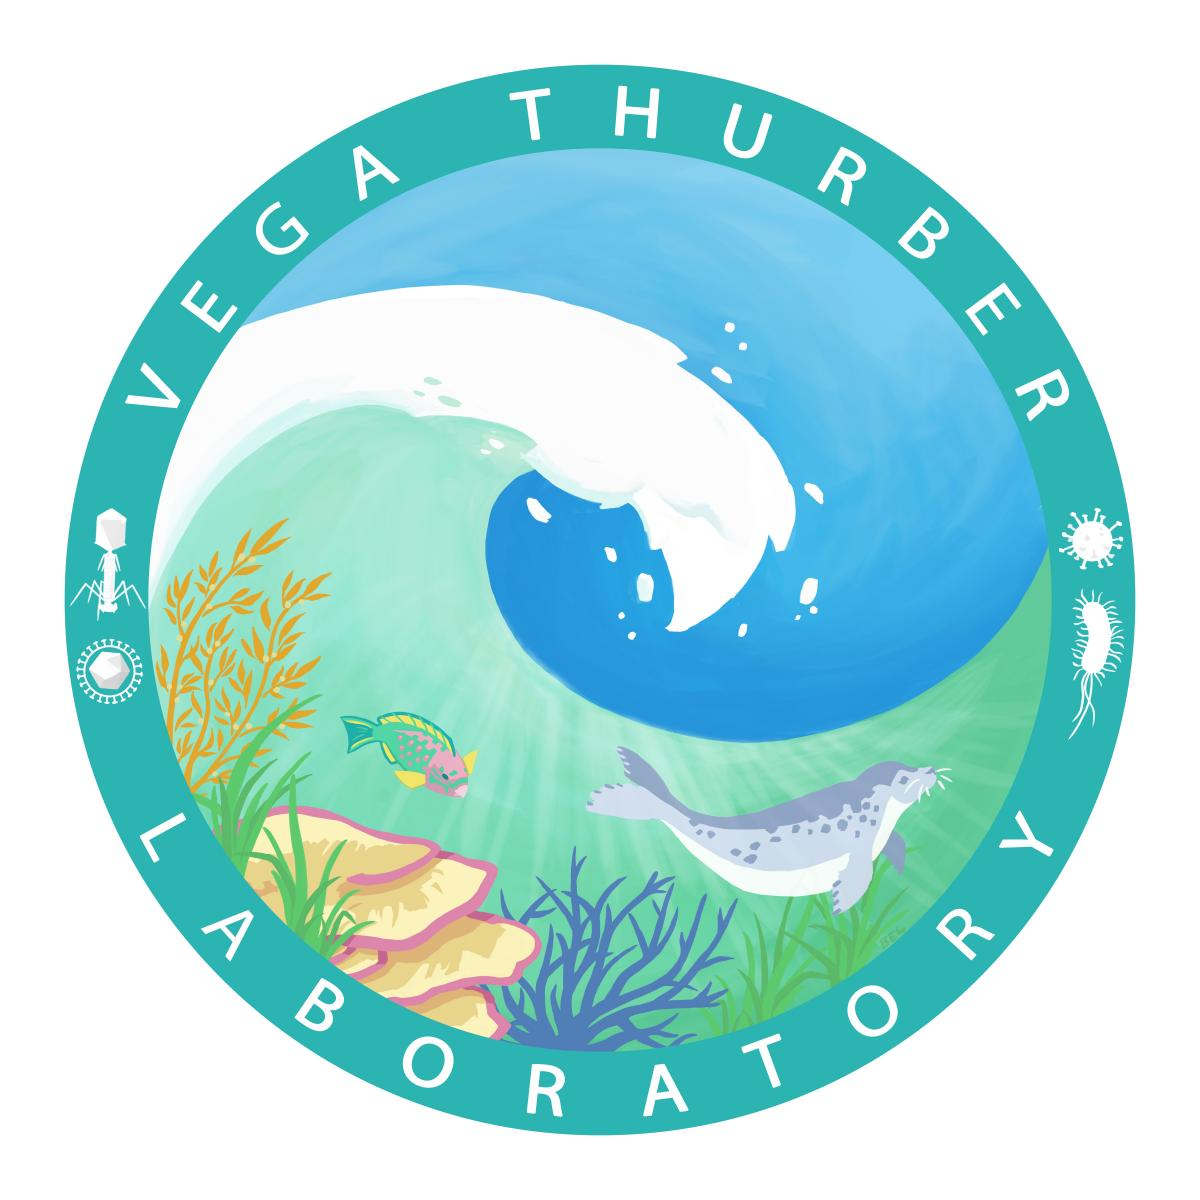 Vega Thurber lab logo